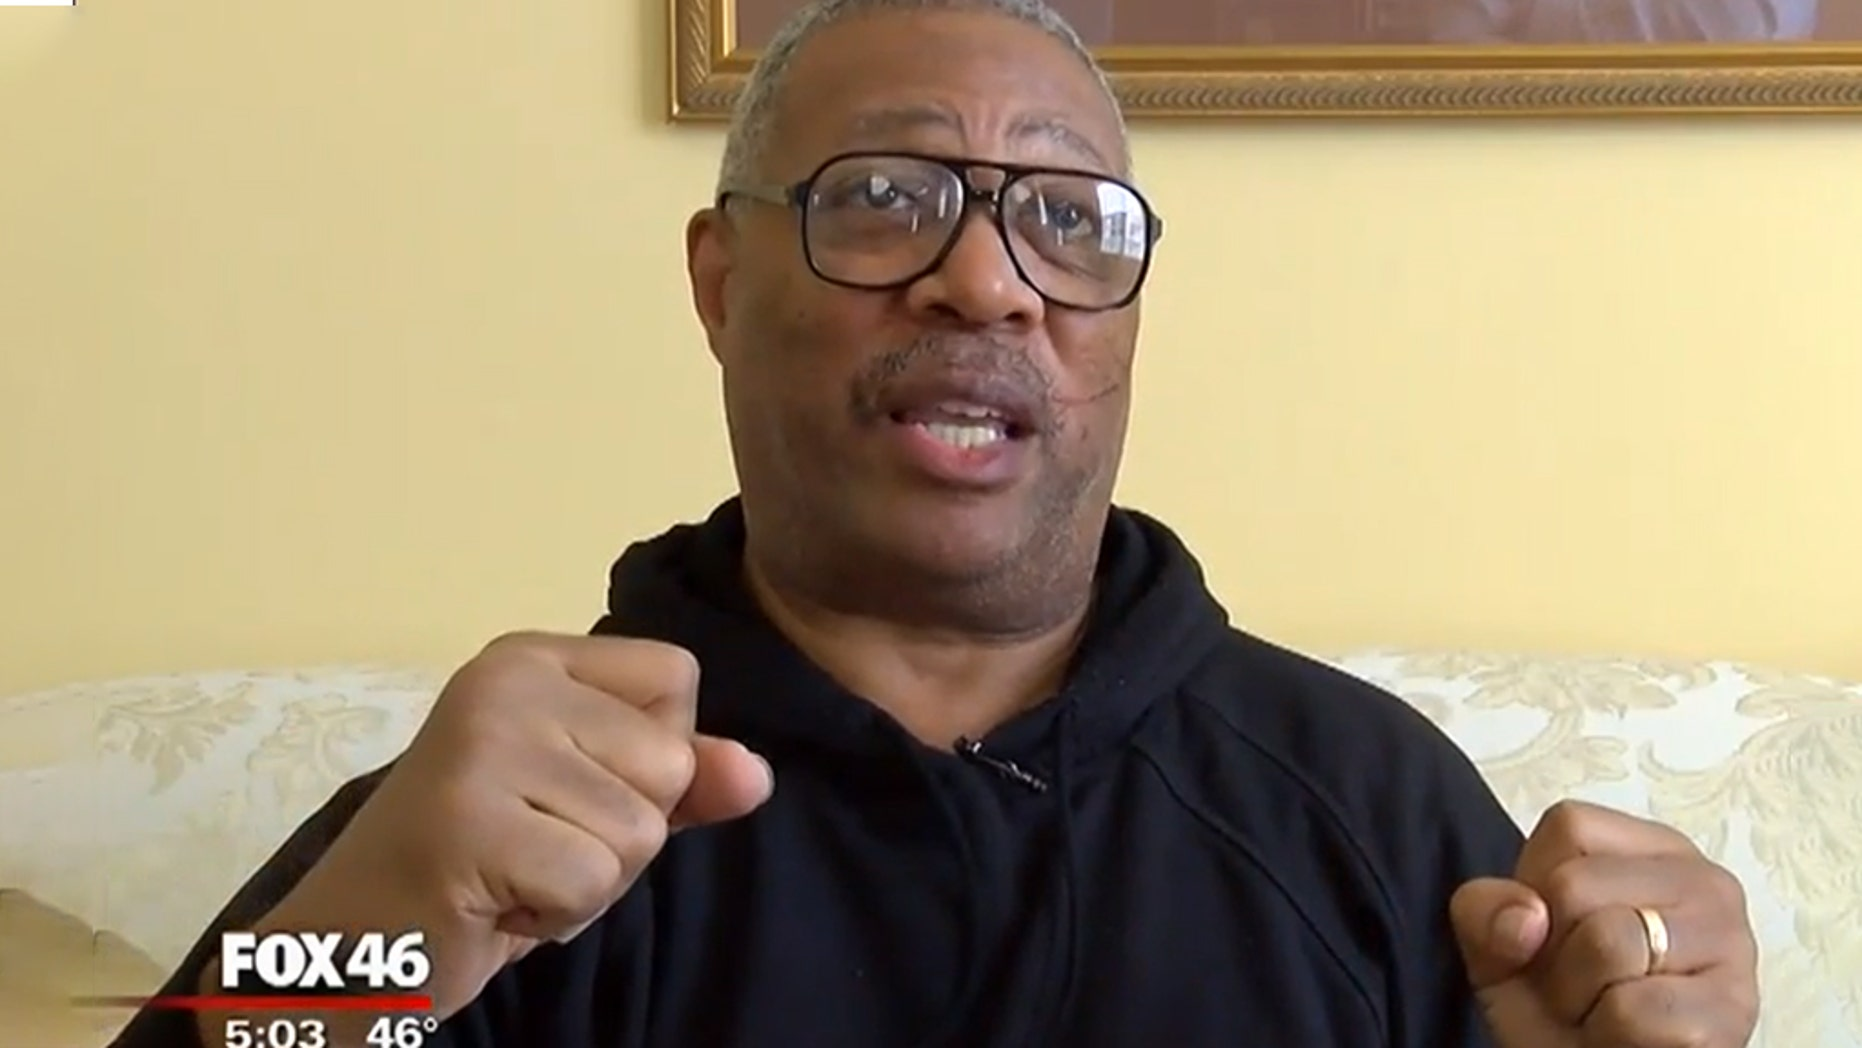 Larry James, a pastor at South End Presbyterian Church in North Carolina, said he fought off an attacker who came into his church Wednesday afternoon moments before the suspect was fatally shot by a Charlotte-Mecklenburg police officer. (Fox 46)